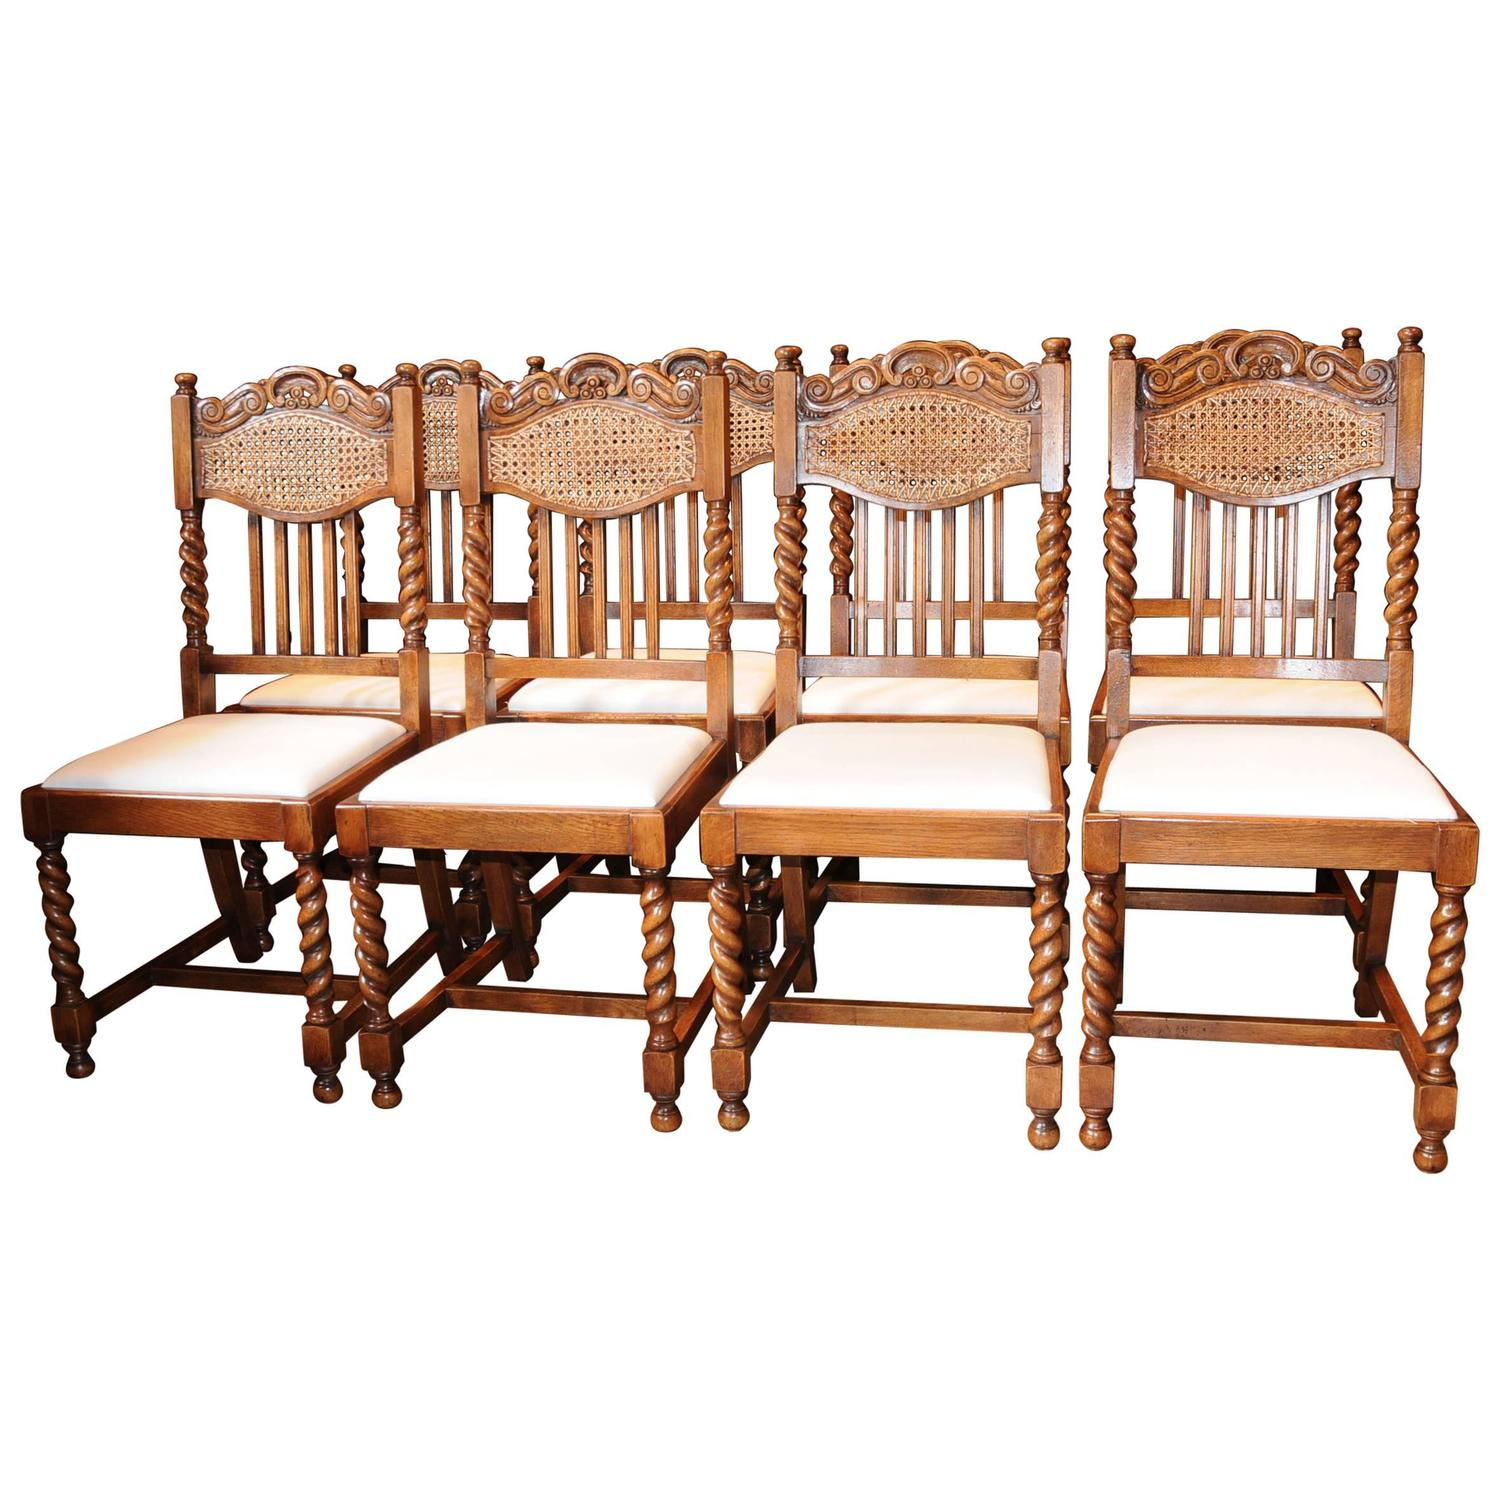 Kitchen Chairs For Sale: Set Of Eight Barley Twist Dining Chairs Kitchen Farmhouse